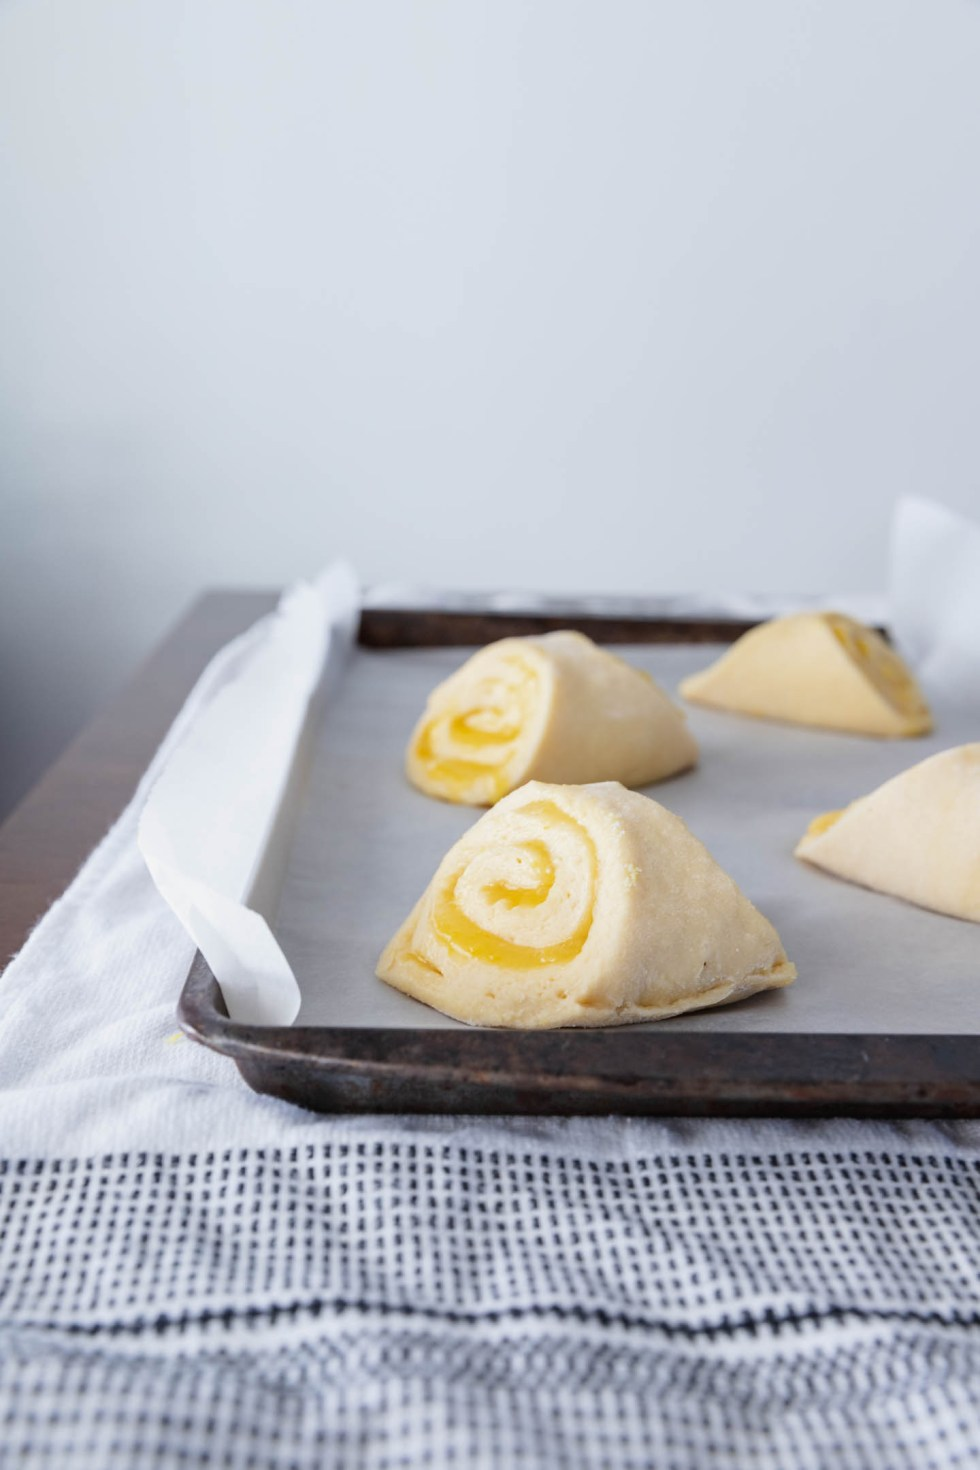 Pyramids of meyer lemon sweet roll on parchment lined sheet.